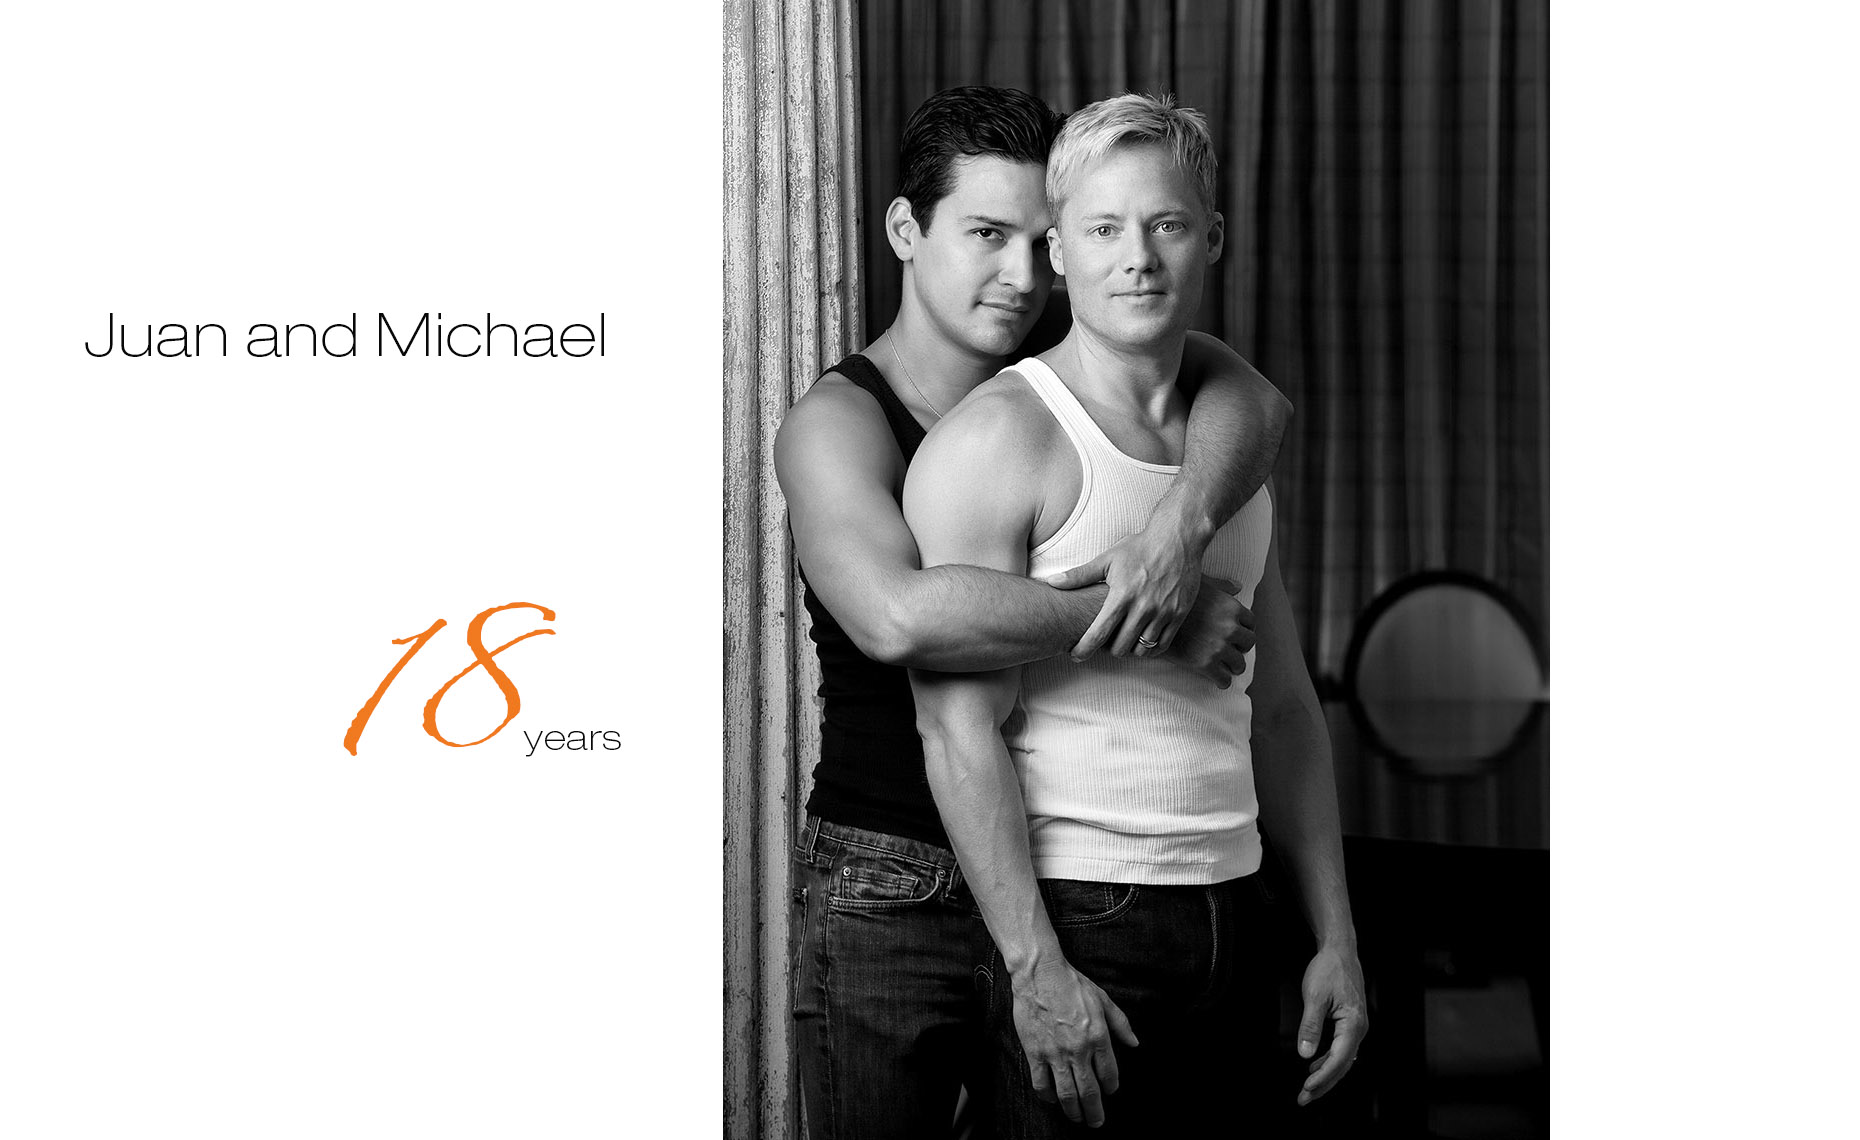 Juan and Michael, together 18yrs